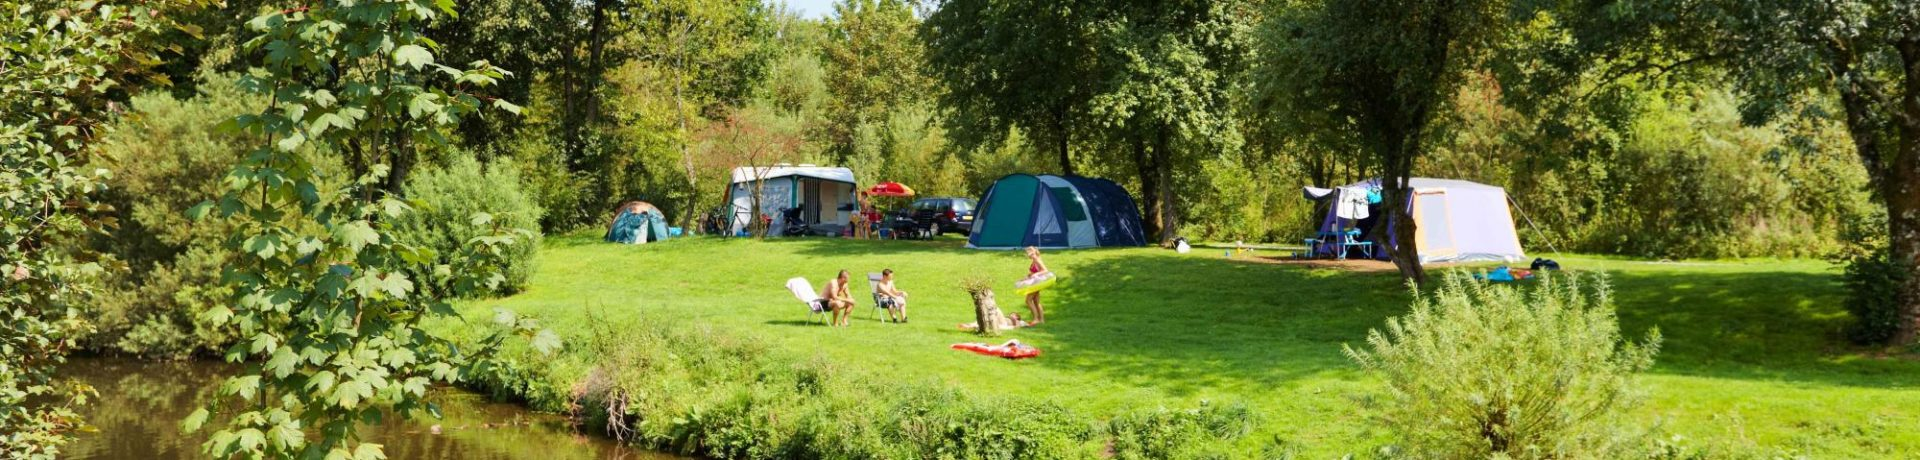 Camping de Chênefleur in Tintigny ist ein Charme Camping mit Schwimmbad in Luxemburg Wallonië am ein fluss.